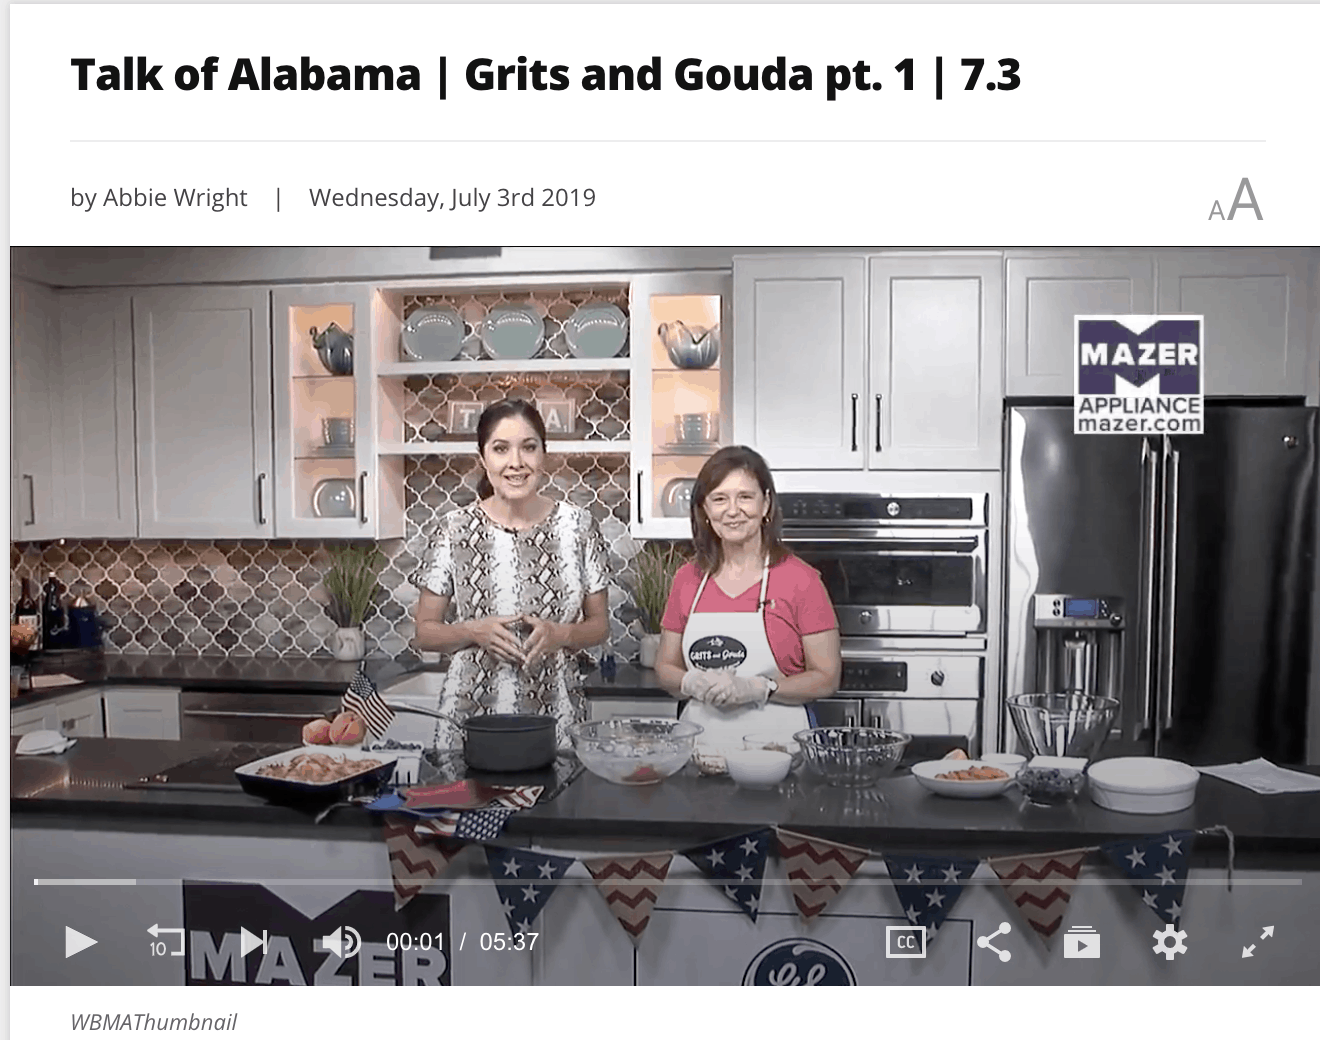 Picture of Kathleen Royal Phillips and Nicole Allshouse on Talk of Alabama making blueberry peach cobbler